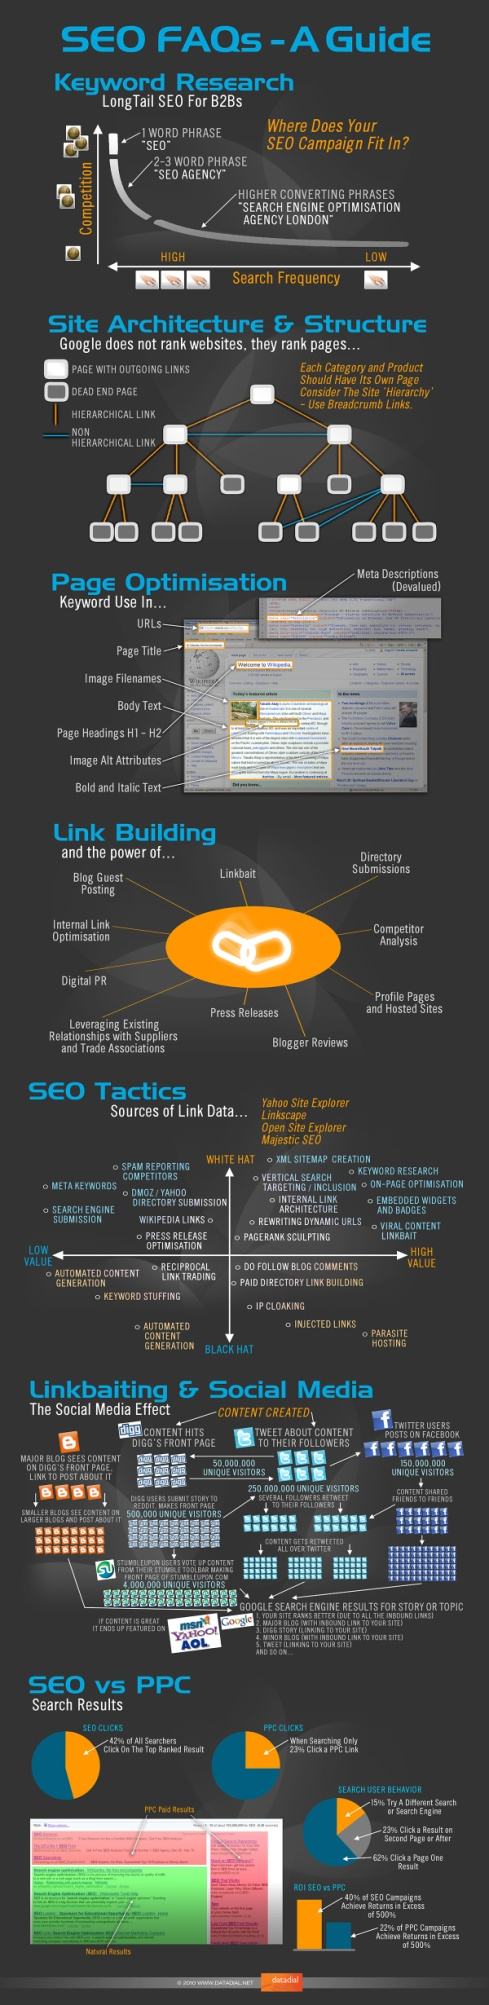 seo pictures infographic